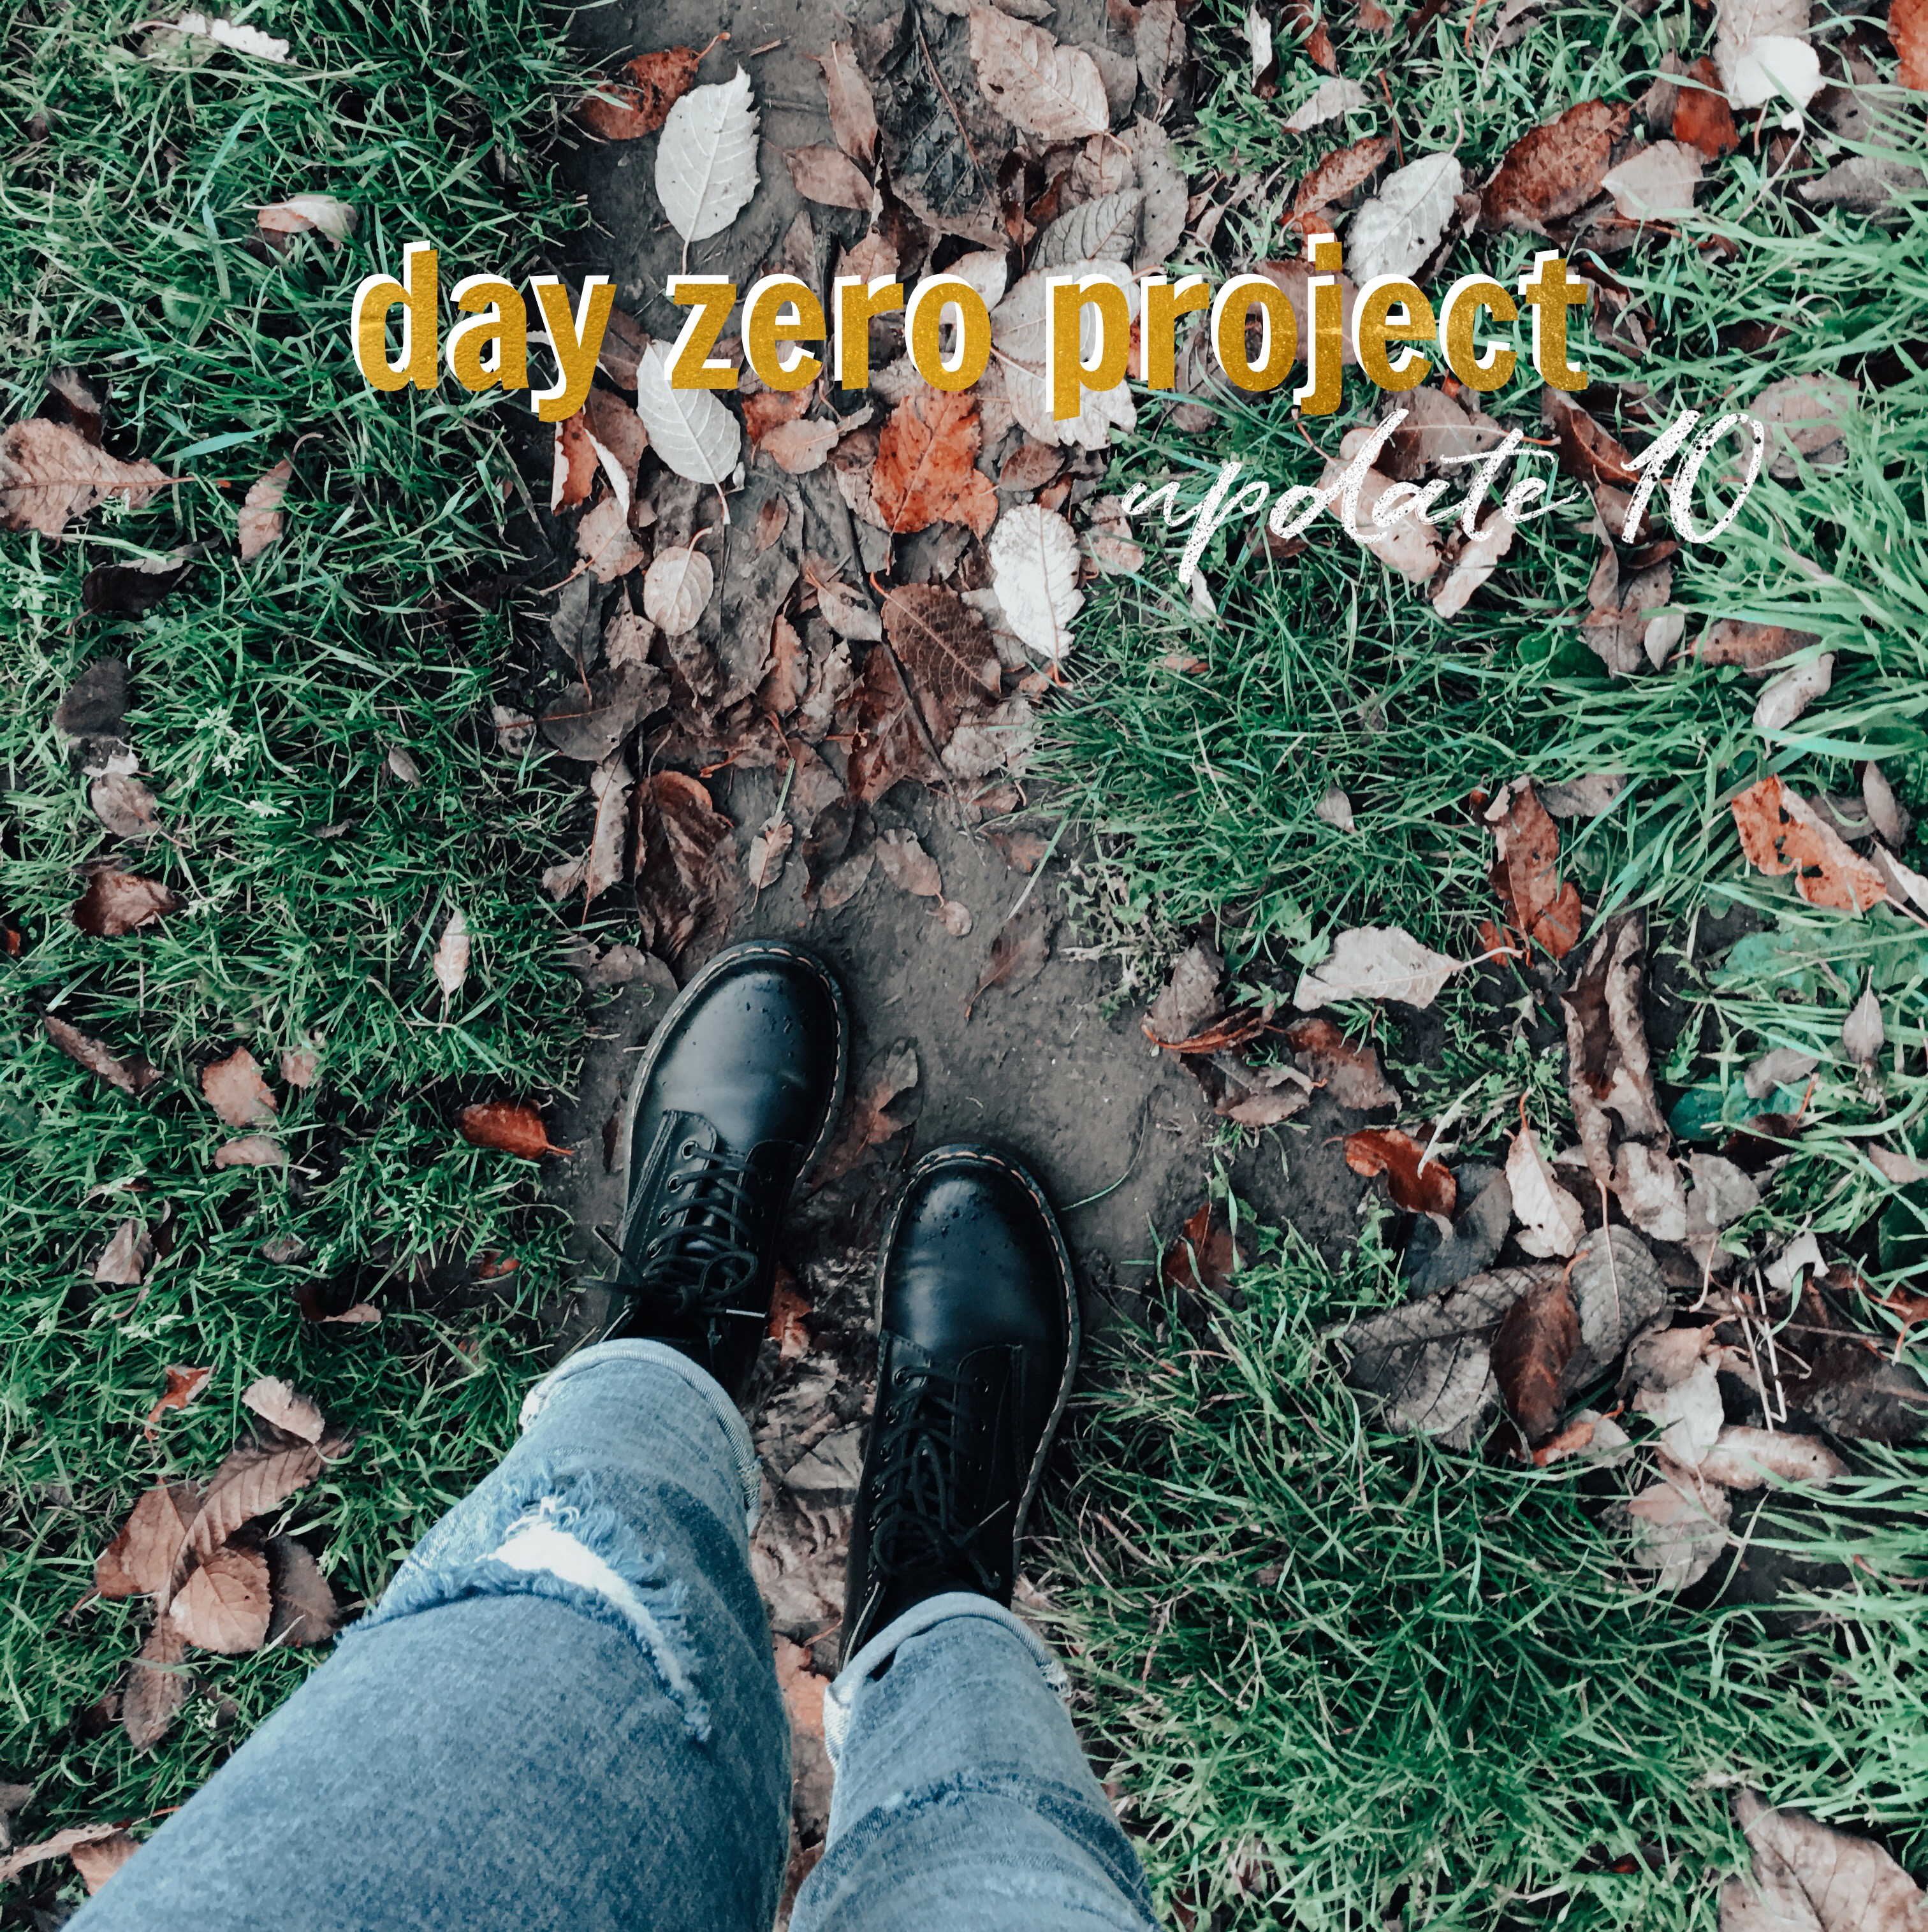 Day zero project | Update 10